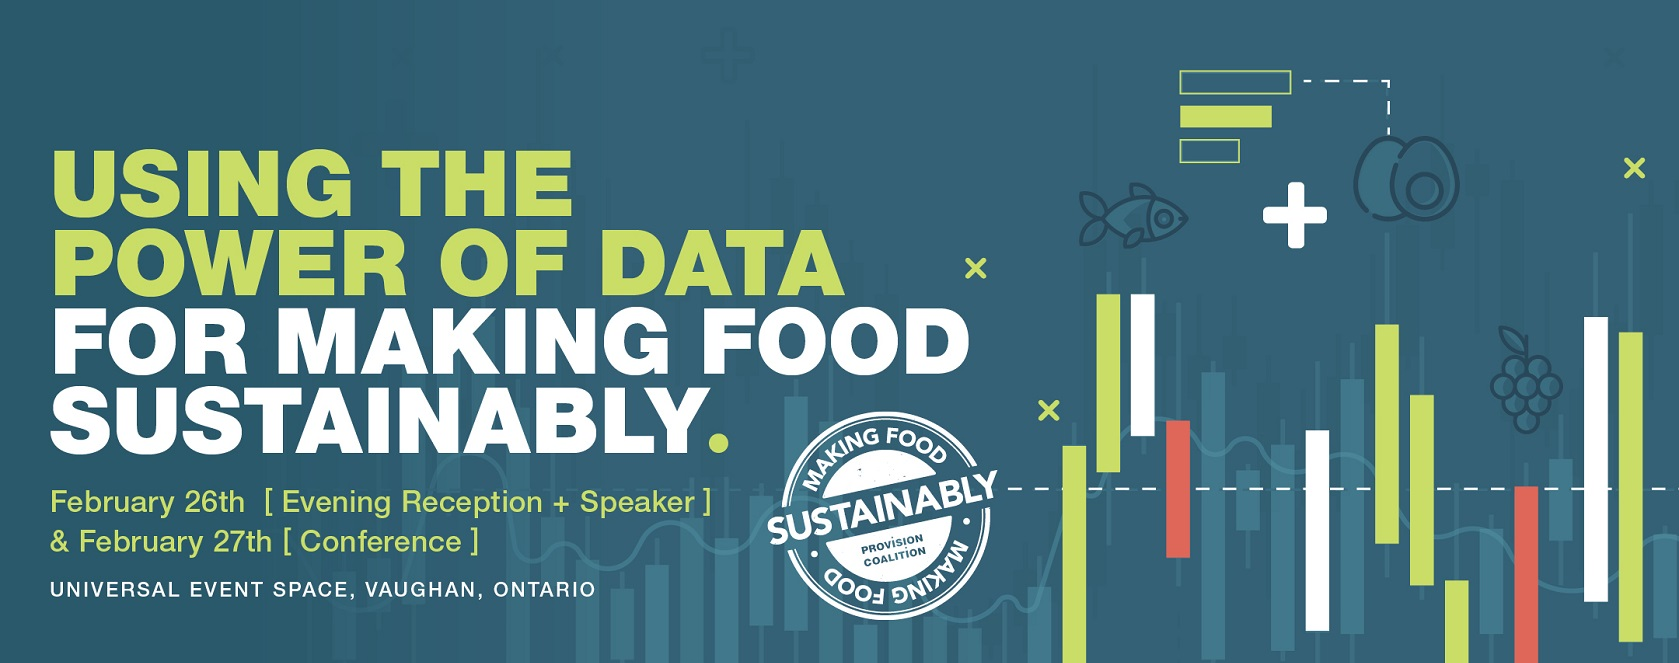 Join us for our 2019 fourth Annual Making Food Sustainably Conference